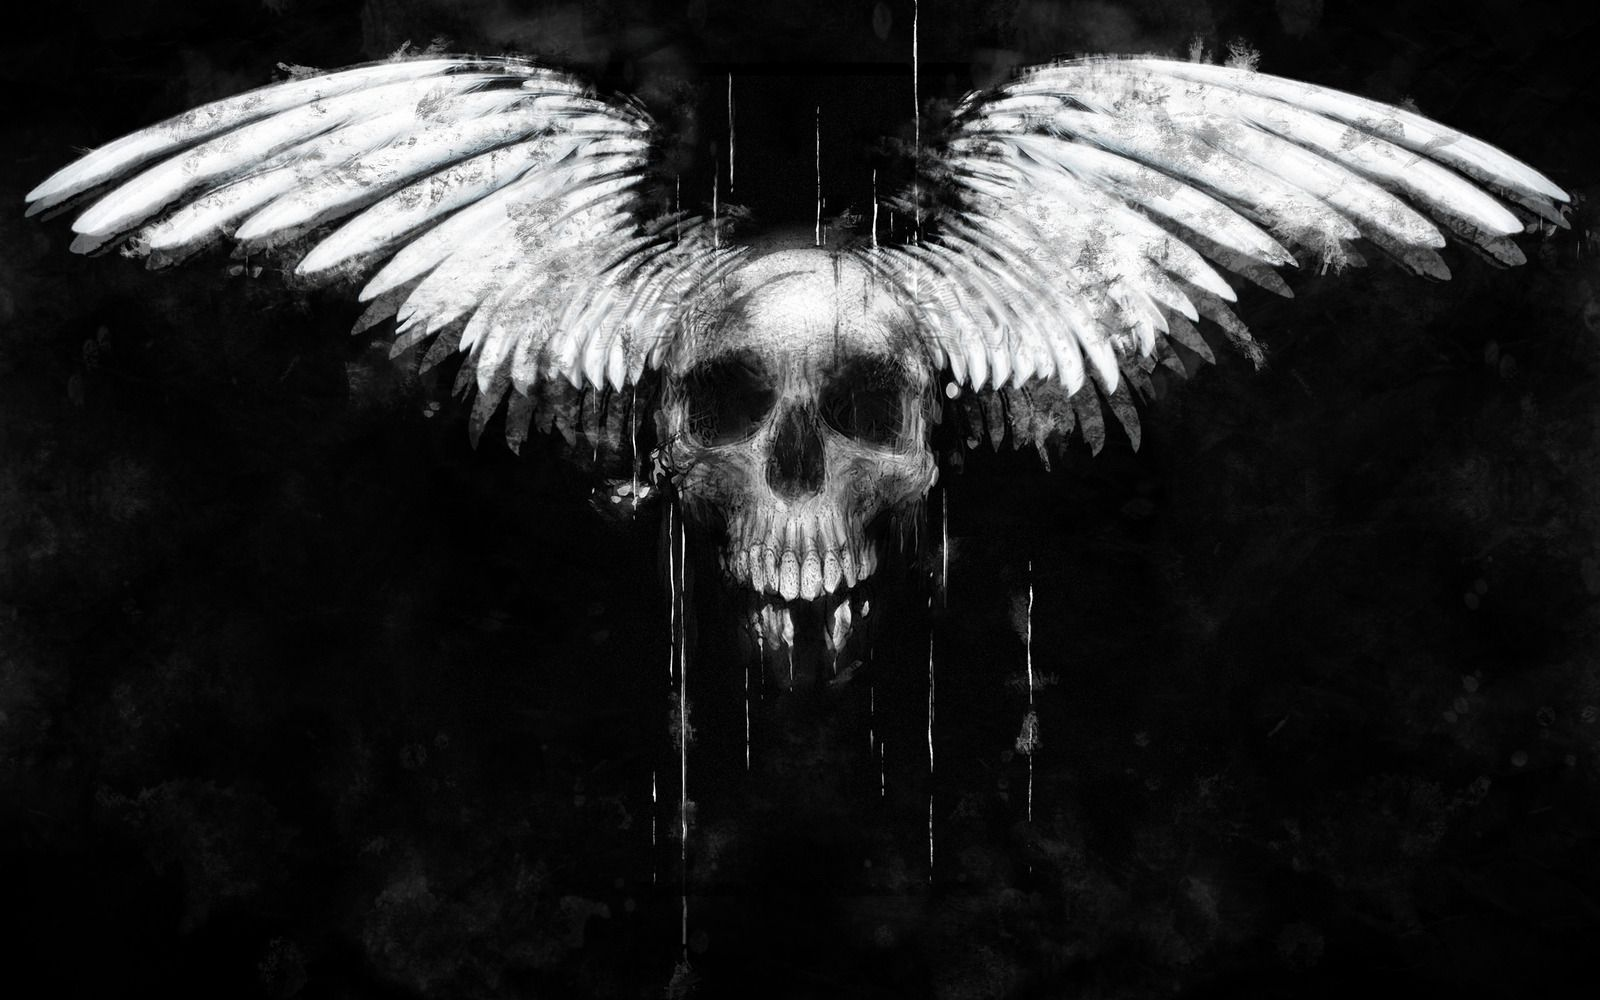 Skull 3d Wallpaper: Are You Looking For 3D Skull HD Wallpapers? Download